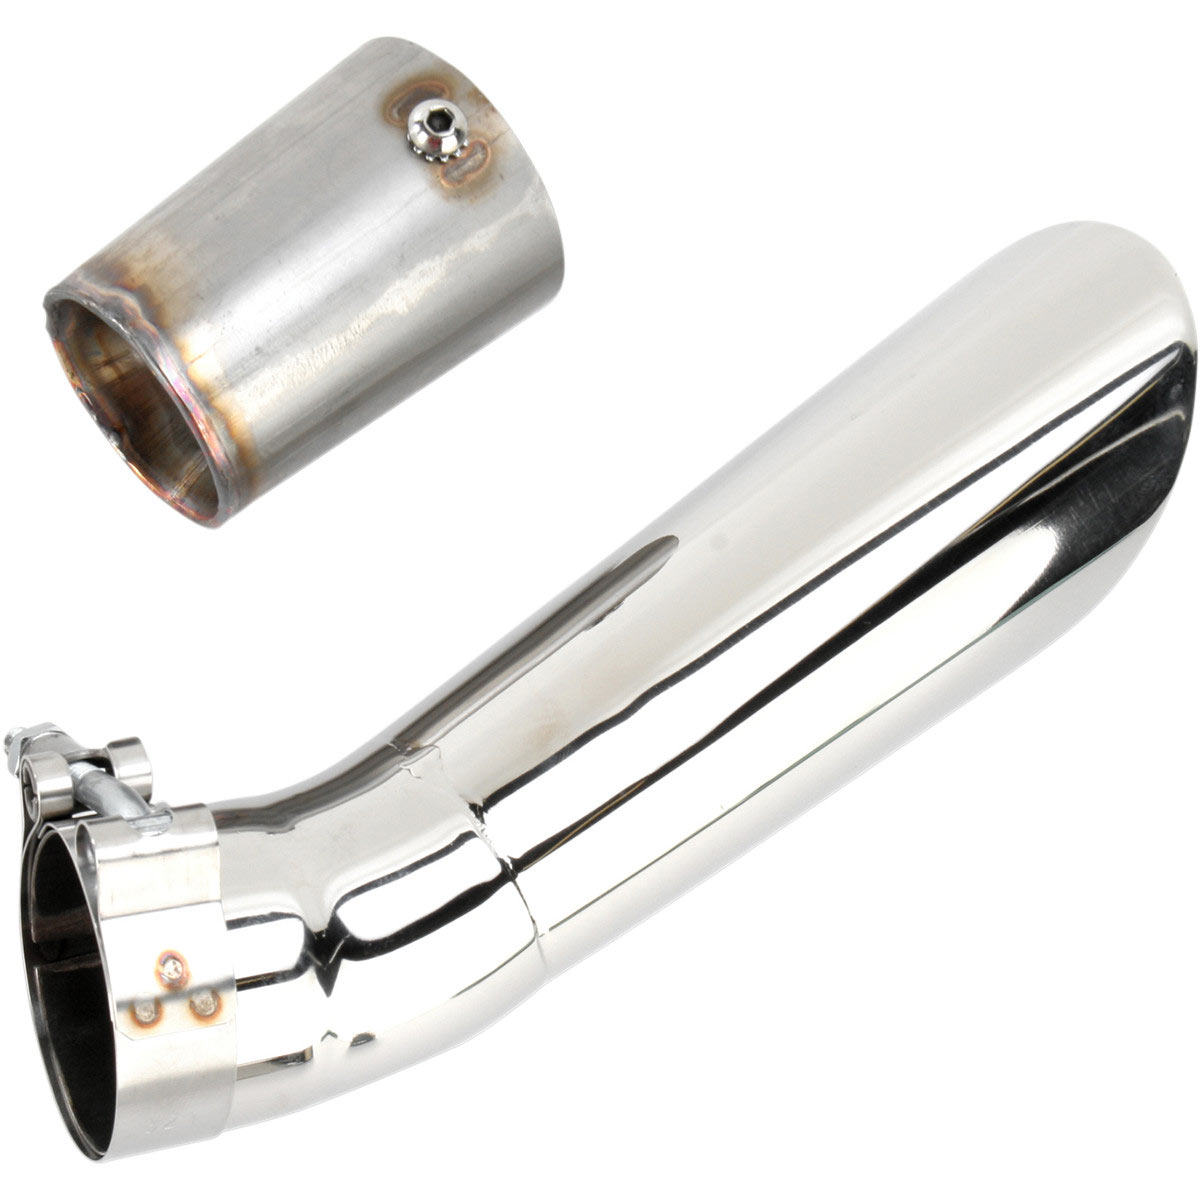 Jardine gp1 slip on exhaust for zx10r 11 12 closeout for Jardine exhaust